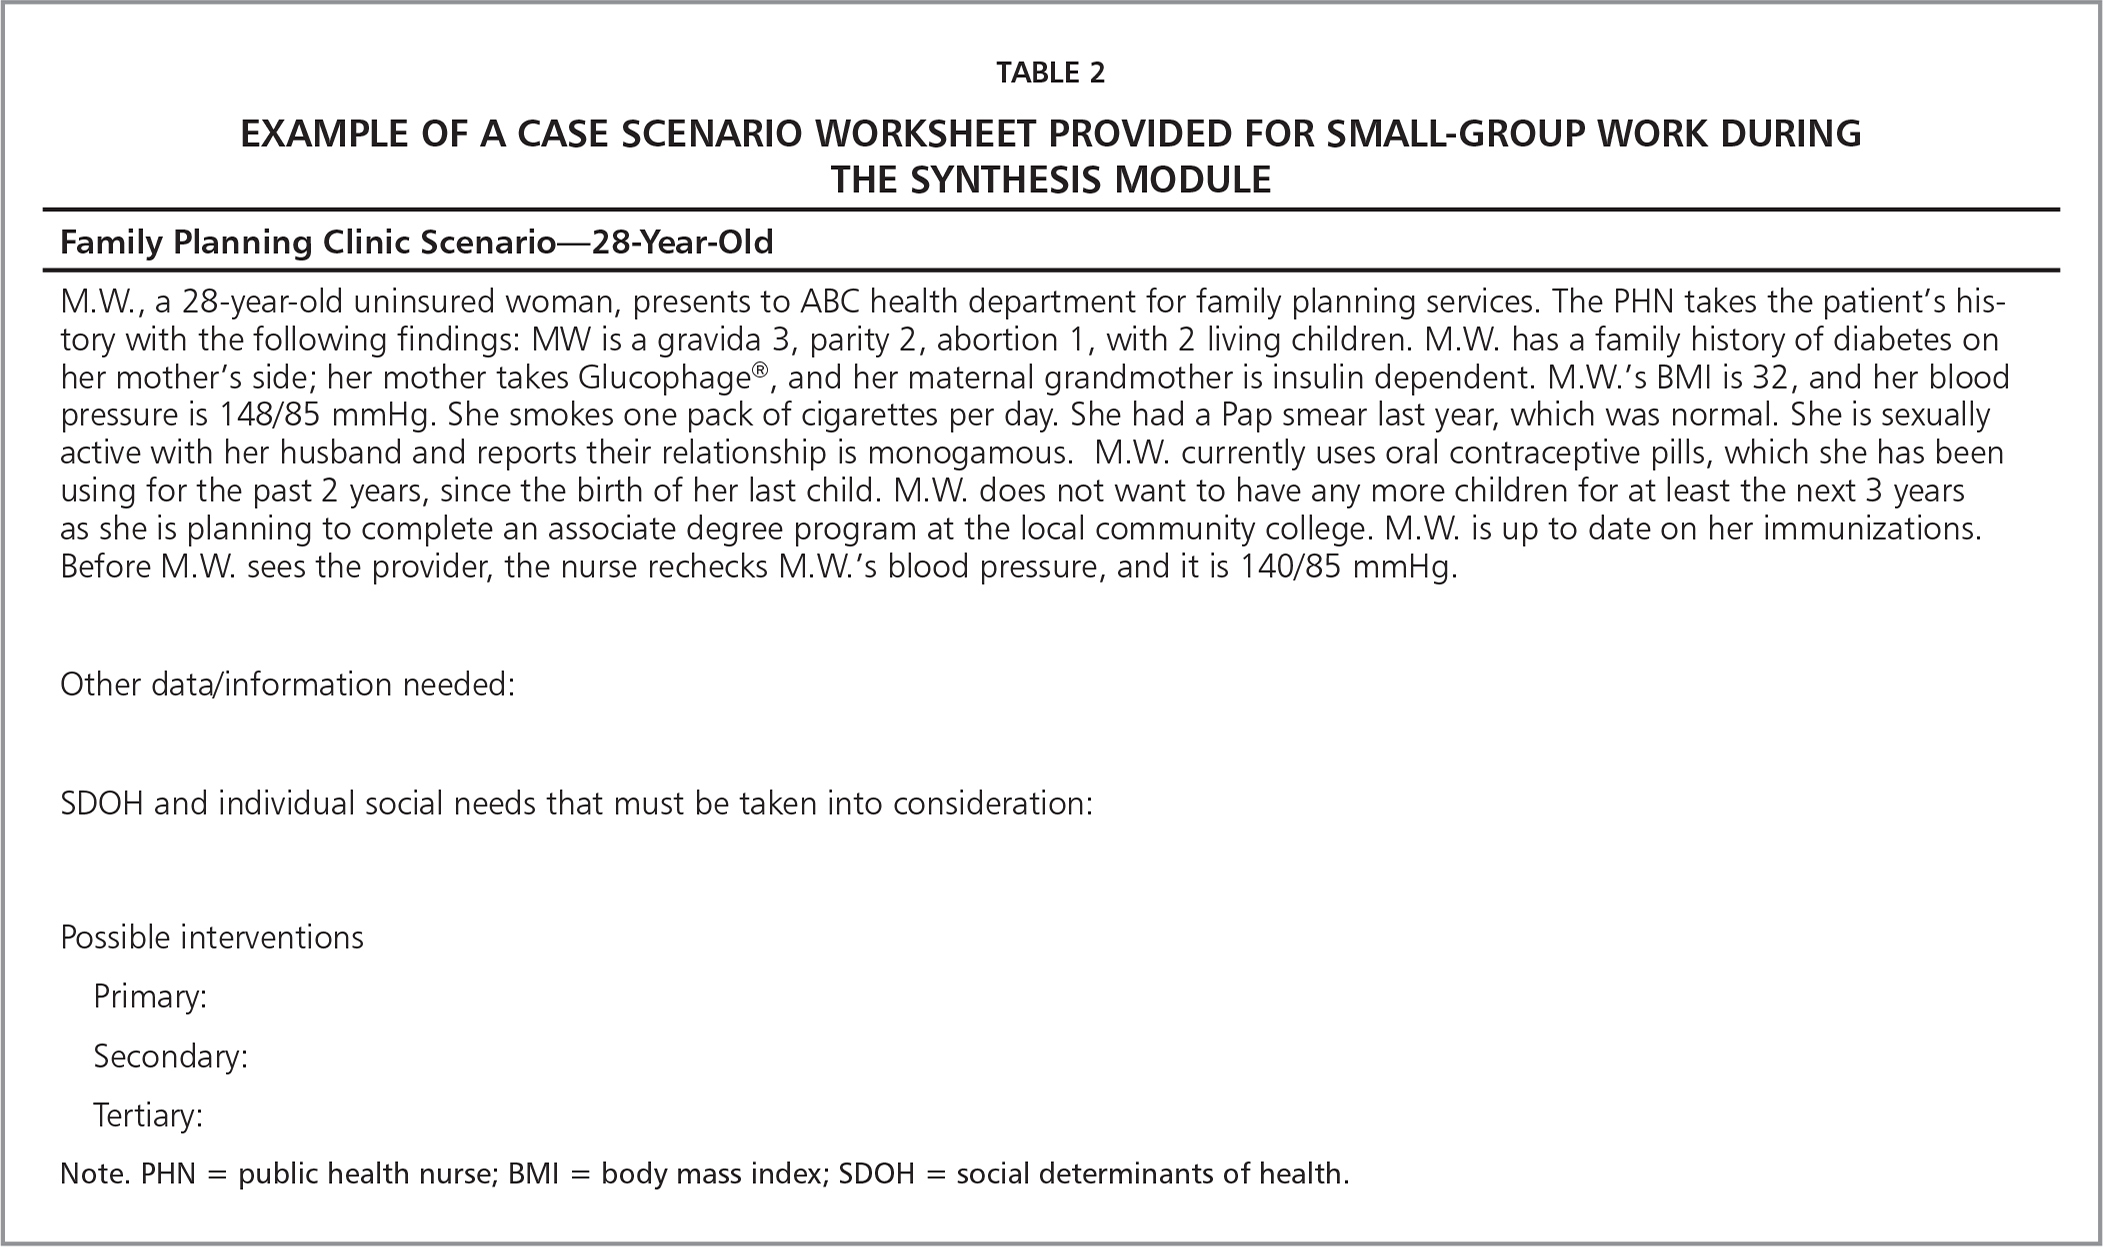 Example of A Case Scenario Worksheet Provided for Small-Group Work During the Synthesis Module